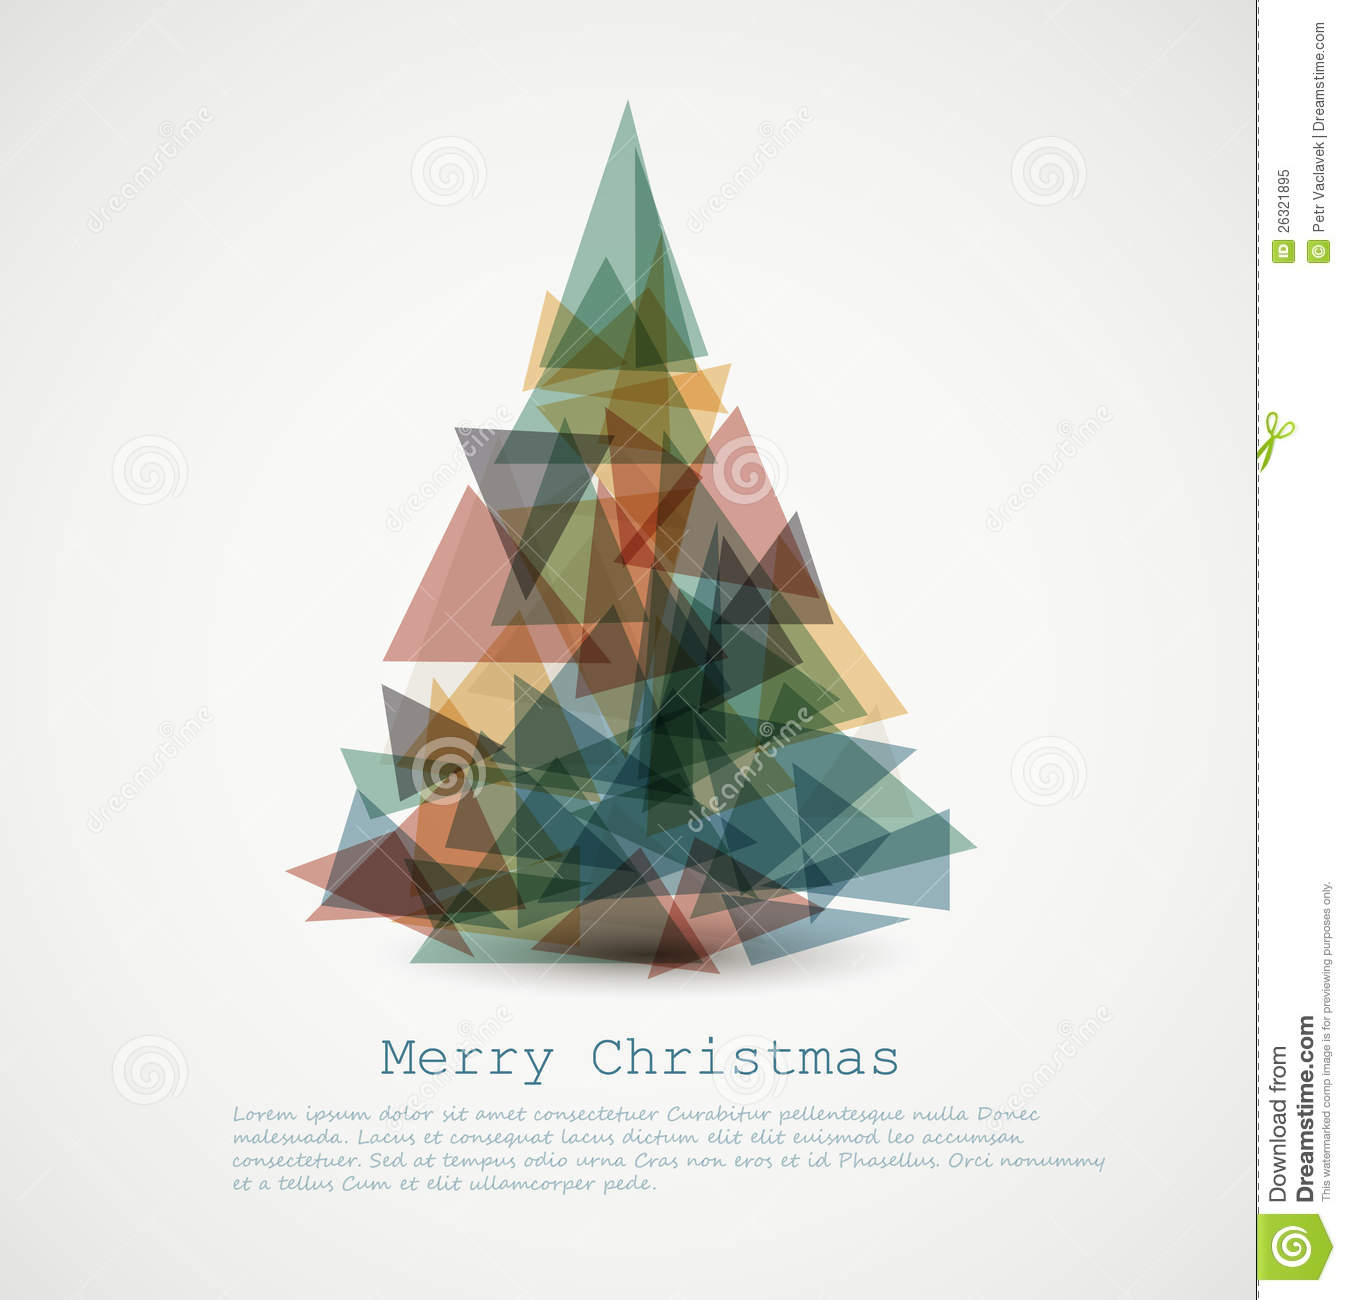 royalty free stock photo download vector card with abstract retro christmas tree - Retro Christmas Tree